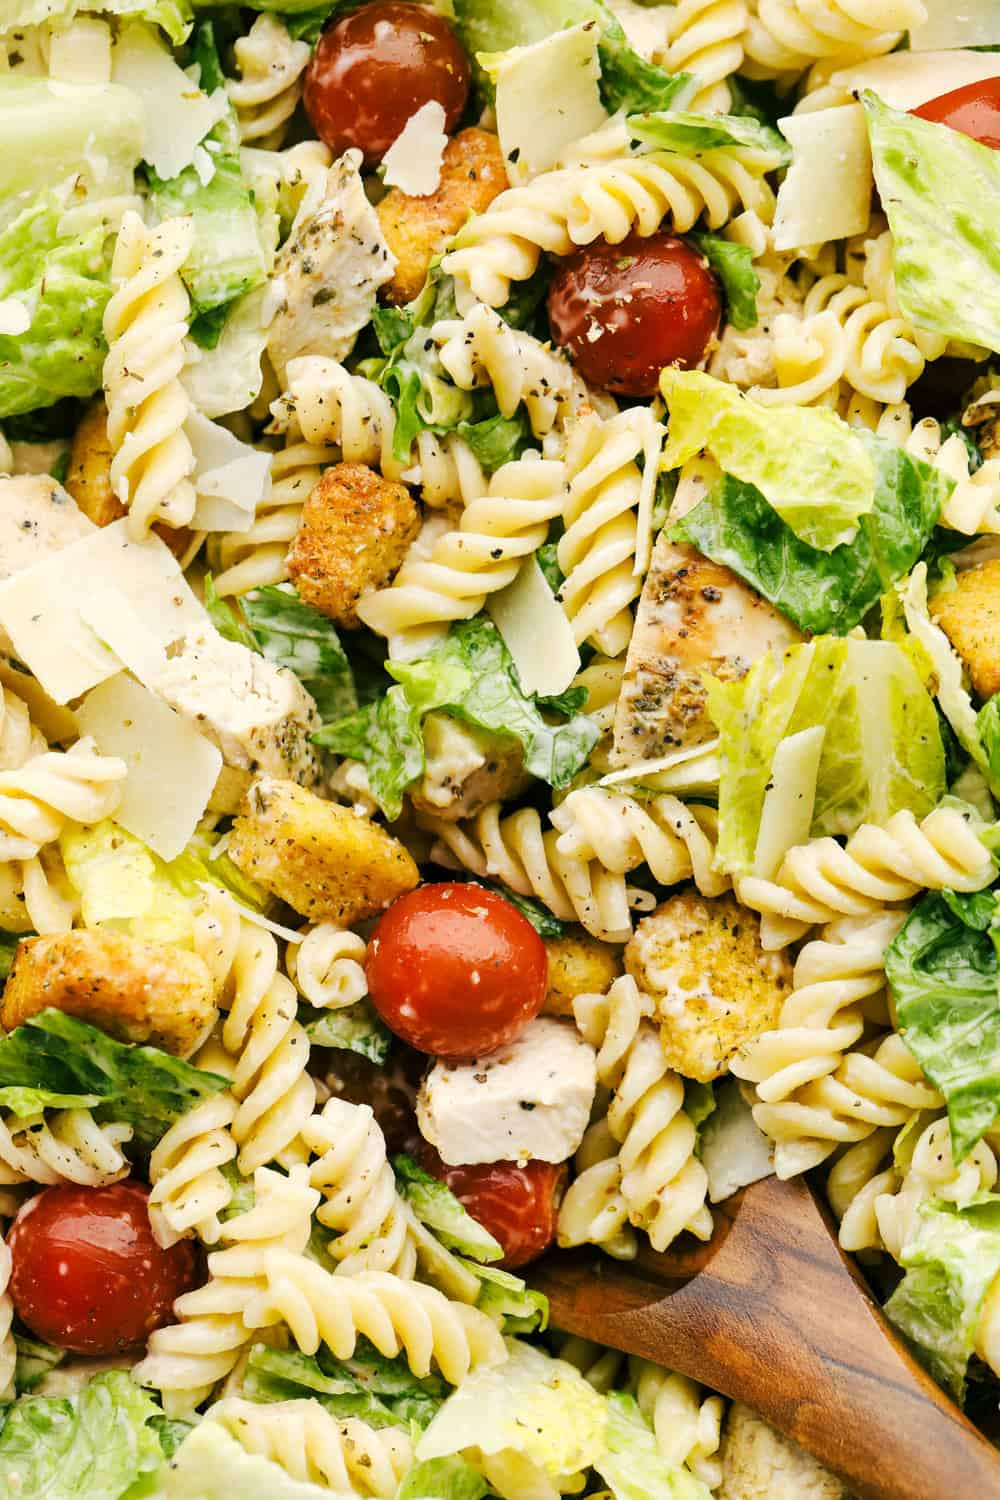 Up close picture showing the texture and flavors in the salad.